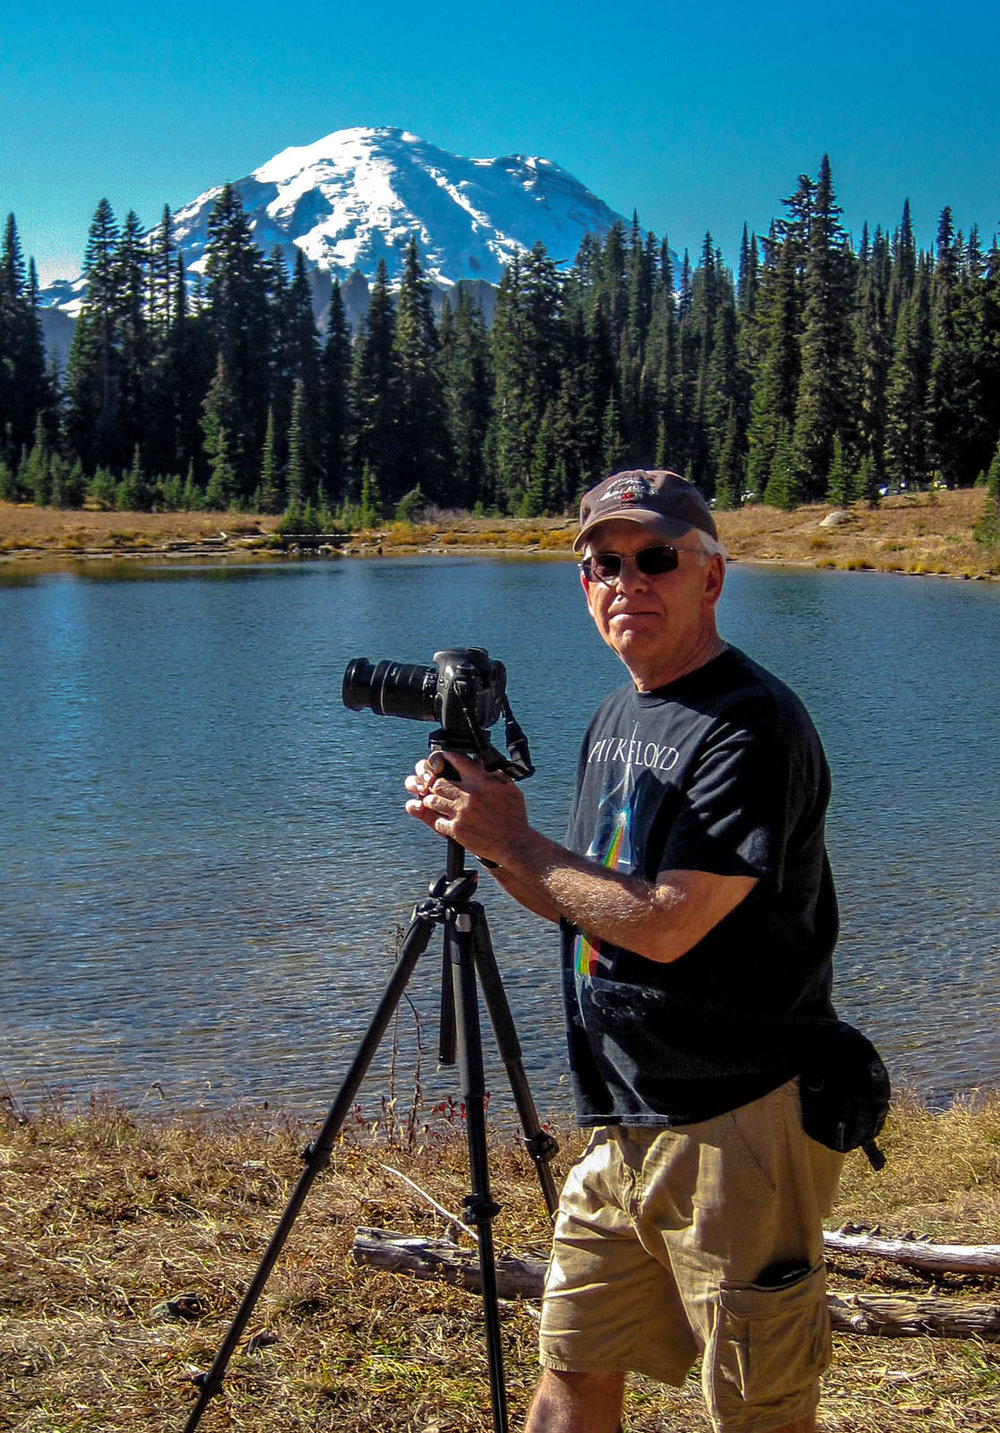 No better place to do landscape photography than at Mt. Rainier National Park. Thanks to my wonderful wife, Cheryl for this great portrait.